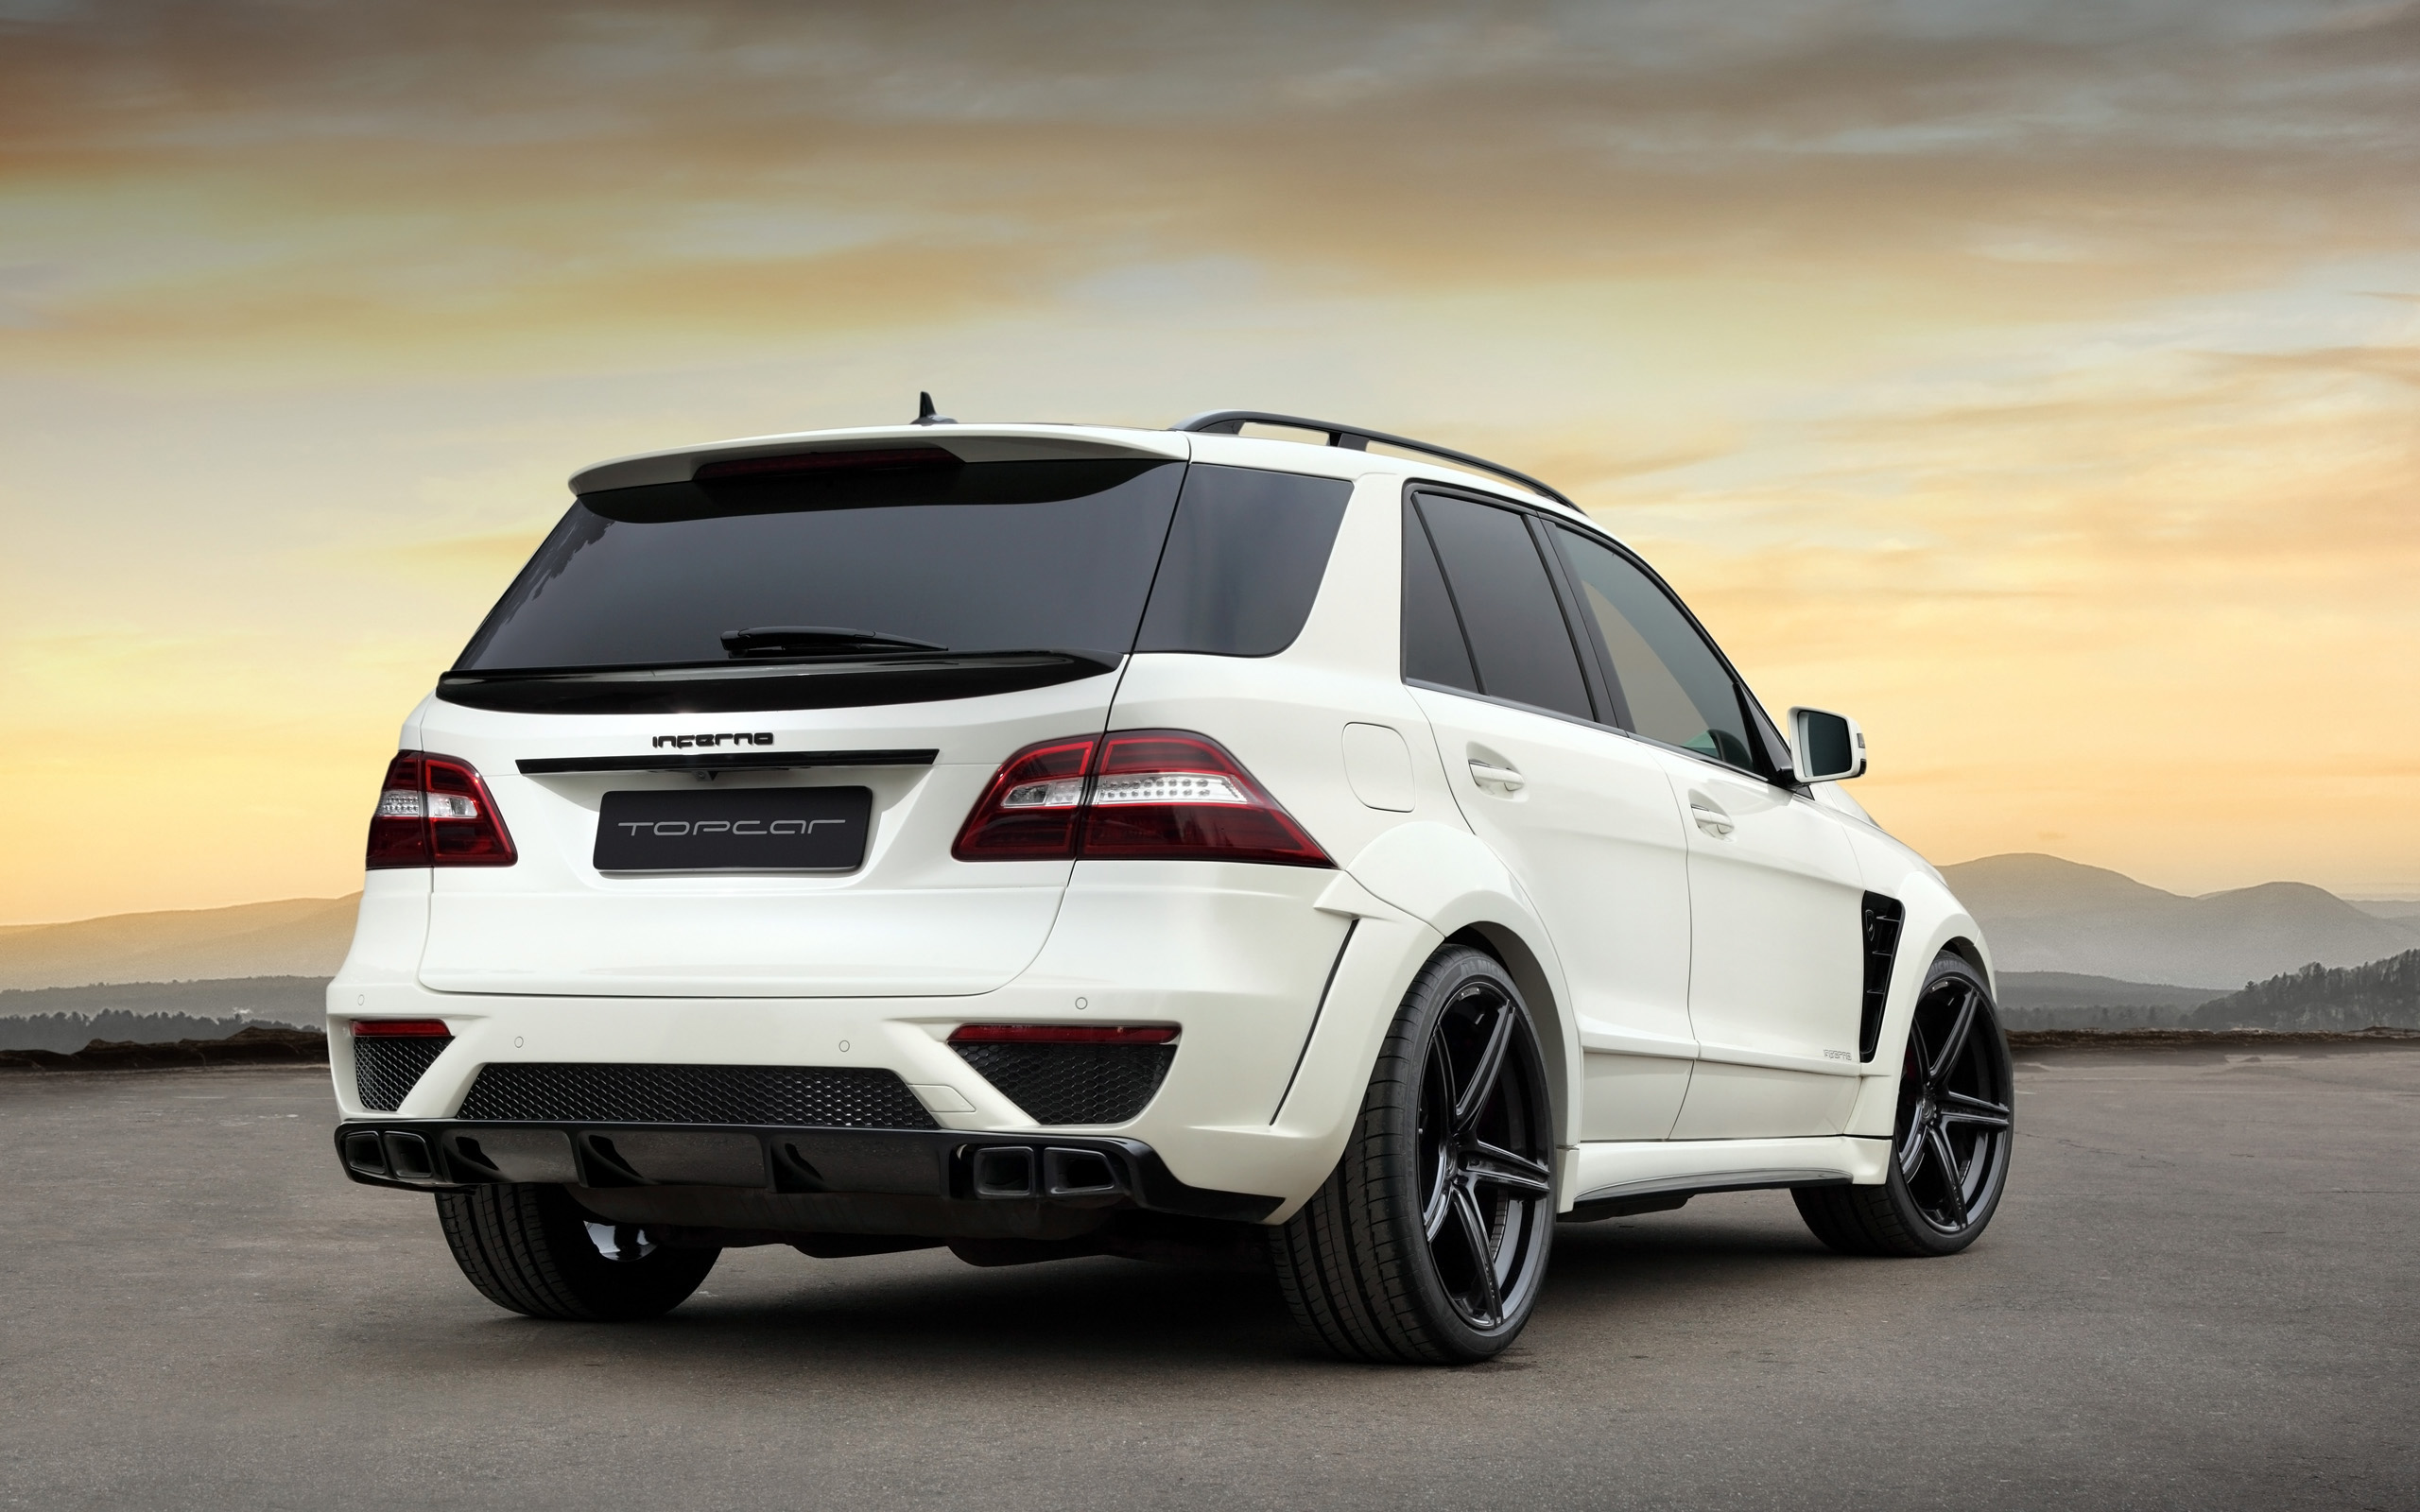 2013 topcar mercedes benz ml 63 amg inferno suv tuning f wallpaper 2560x1600 139340 wallpaperup